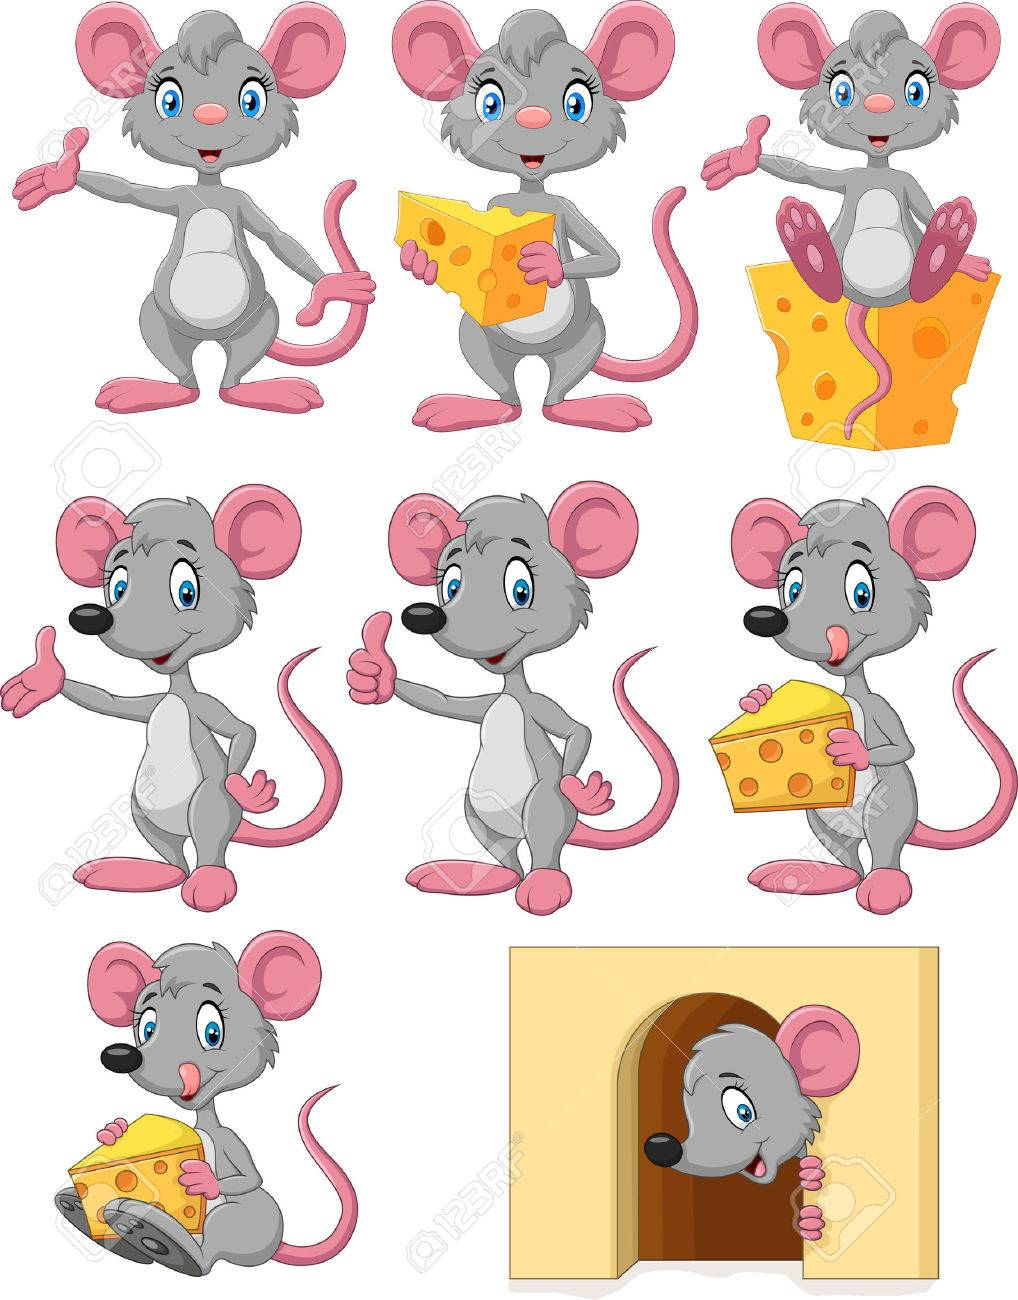 vector illustration of cartoon funny mouse collection set on